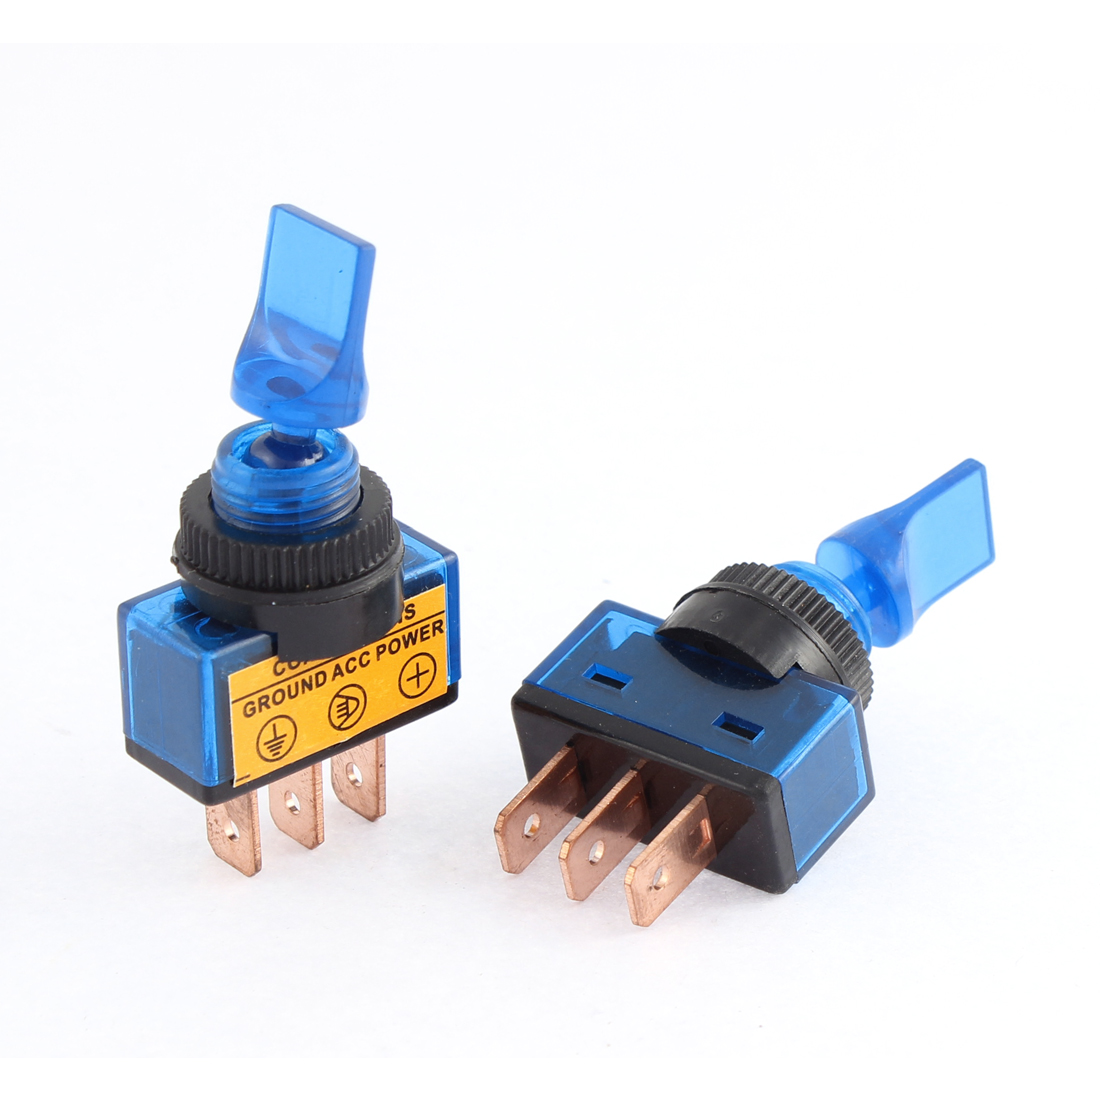 2pcs DC 12V 20A Blue Pilot Light Short Arm 12mm Thread Panel Mount 2 Positions SPST Latching Mini Toggle Switch